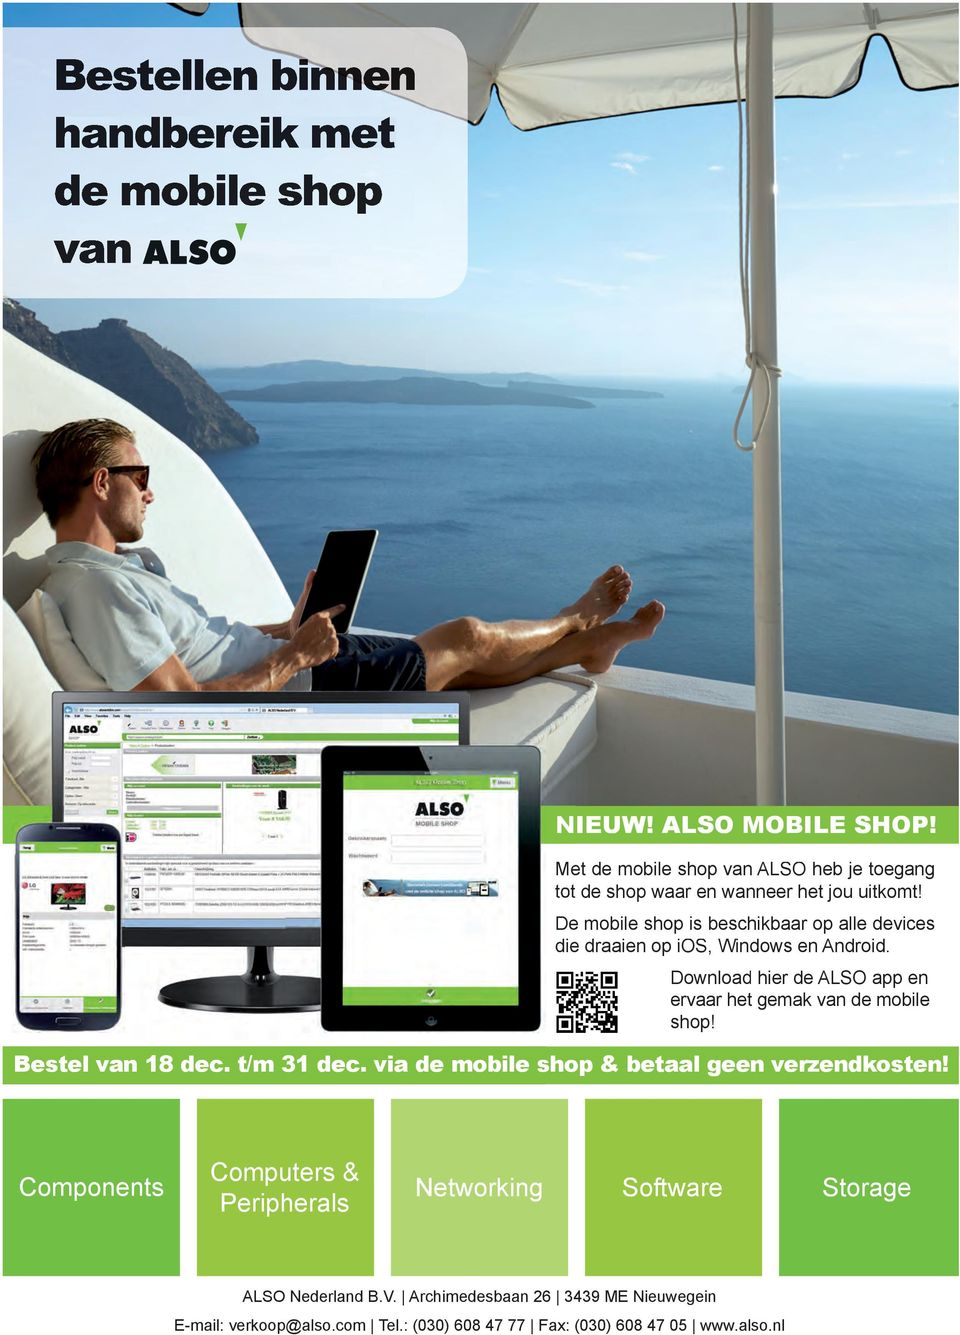 De mobile shop is beschikbaar op alle devices die draaien op ios, Windows en Android.